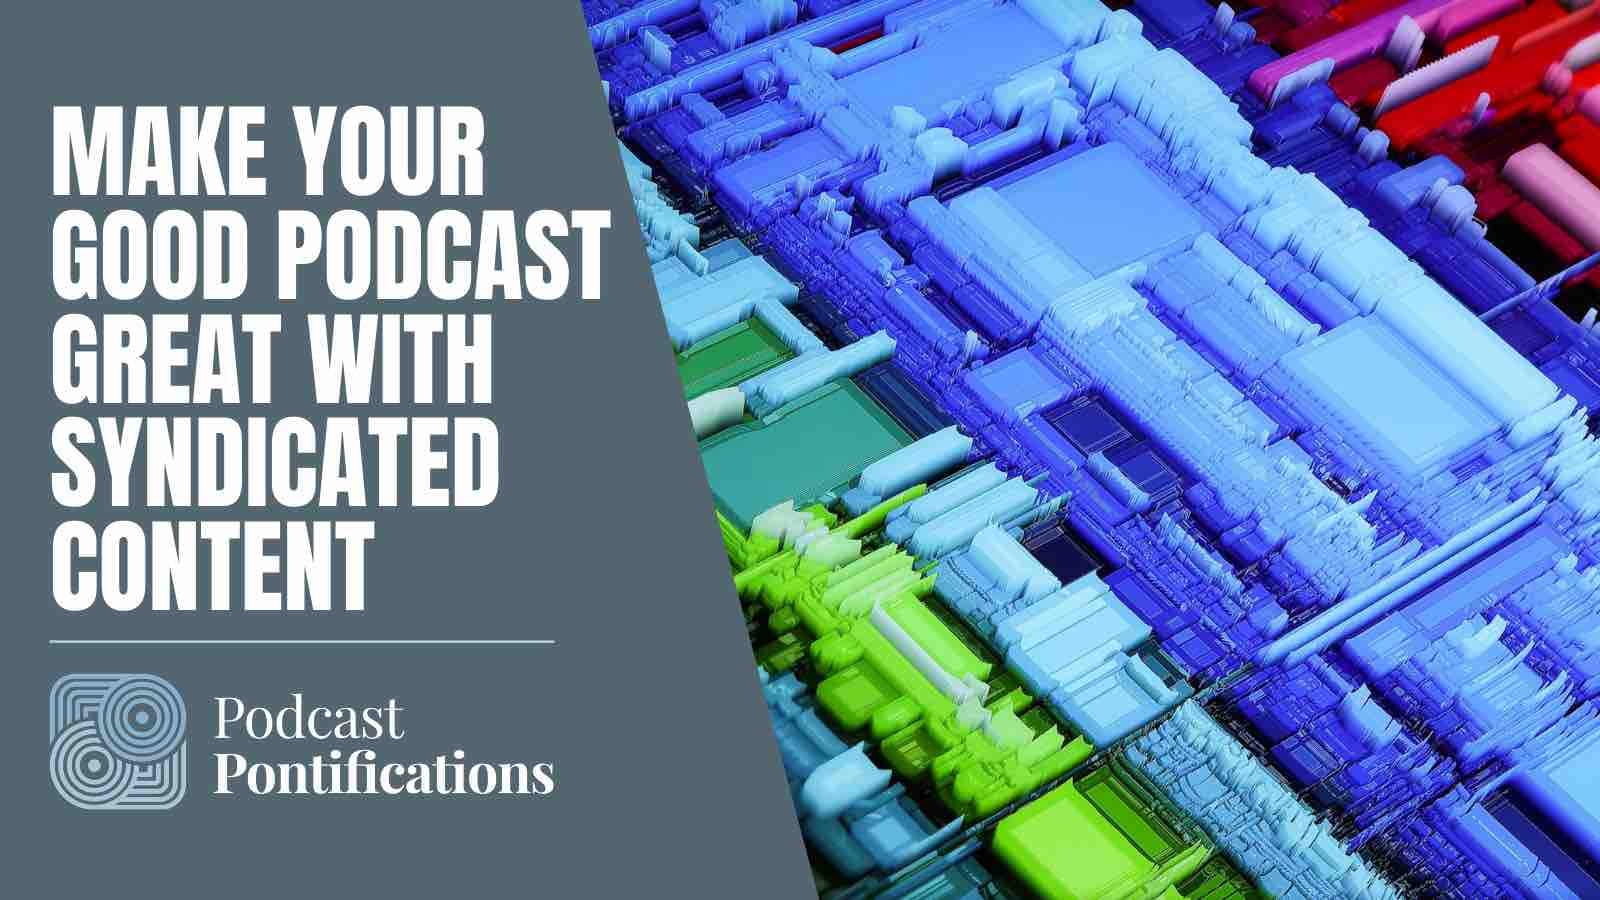 Make Your Good Podcast Great With Syndicated Content